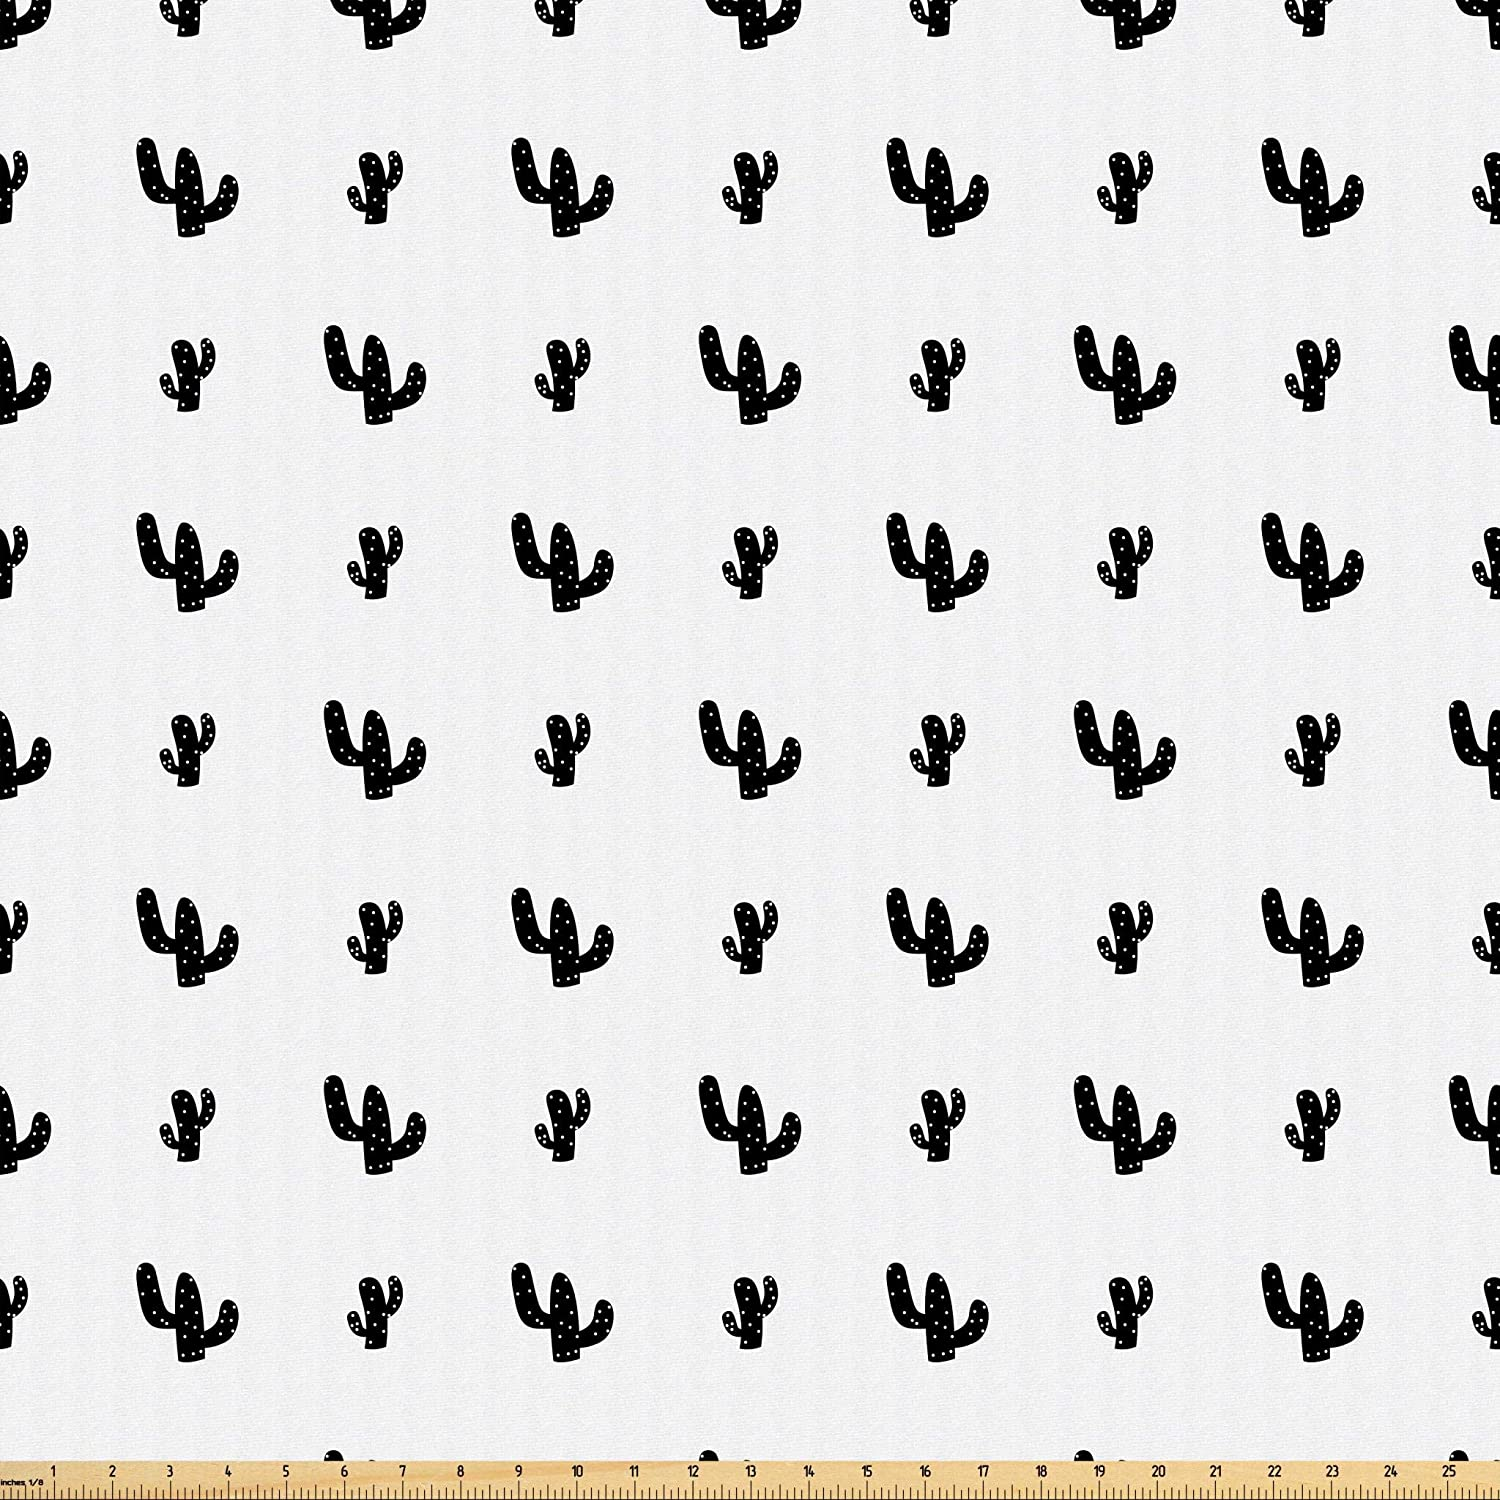 Lunarable Cactus Fabric by The Yard, Monochrome Doodle Pattern of Hand-Drawn Cactus Plant Silhouettes Illustration, Microfiber Fabric for Arts and Crafts Textiles & Decor, 2 Yards, Black and White